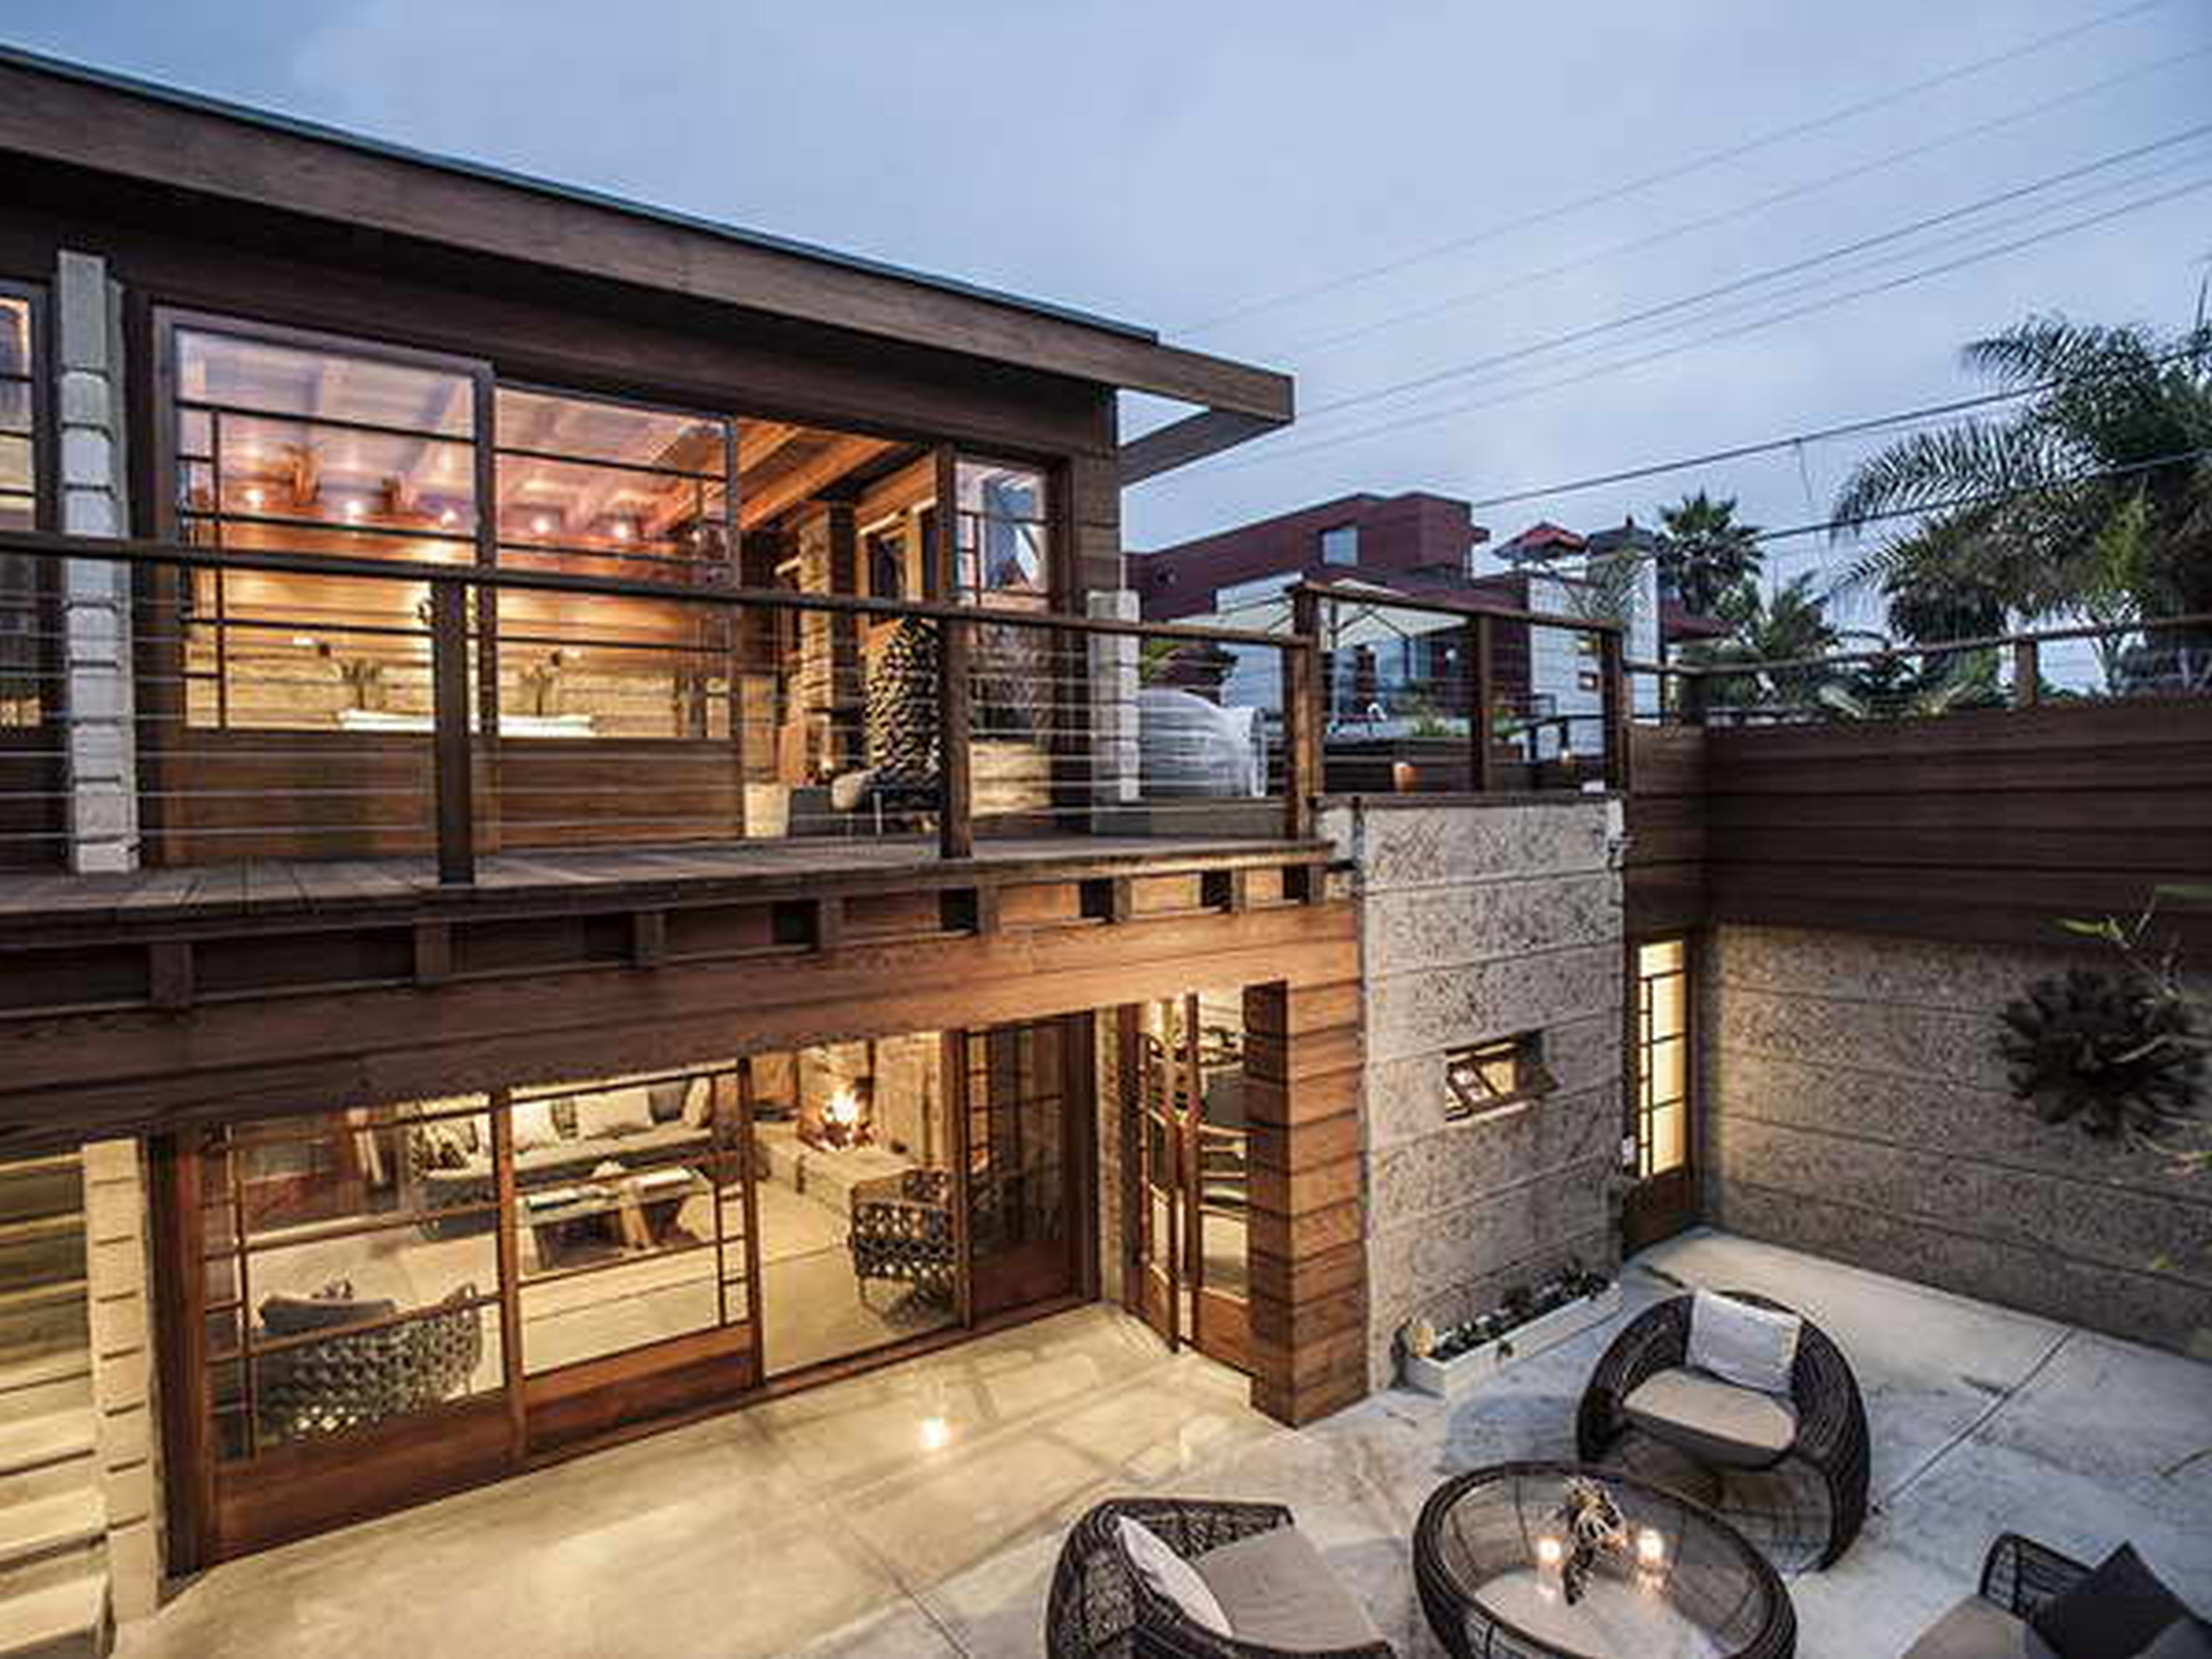 c000b9e93d96f9c3ba221fc9229fed97 - 24+ Small Modern House Interior And Exterior Design Pictures